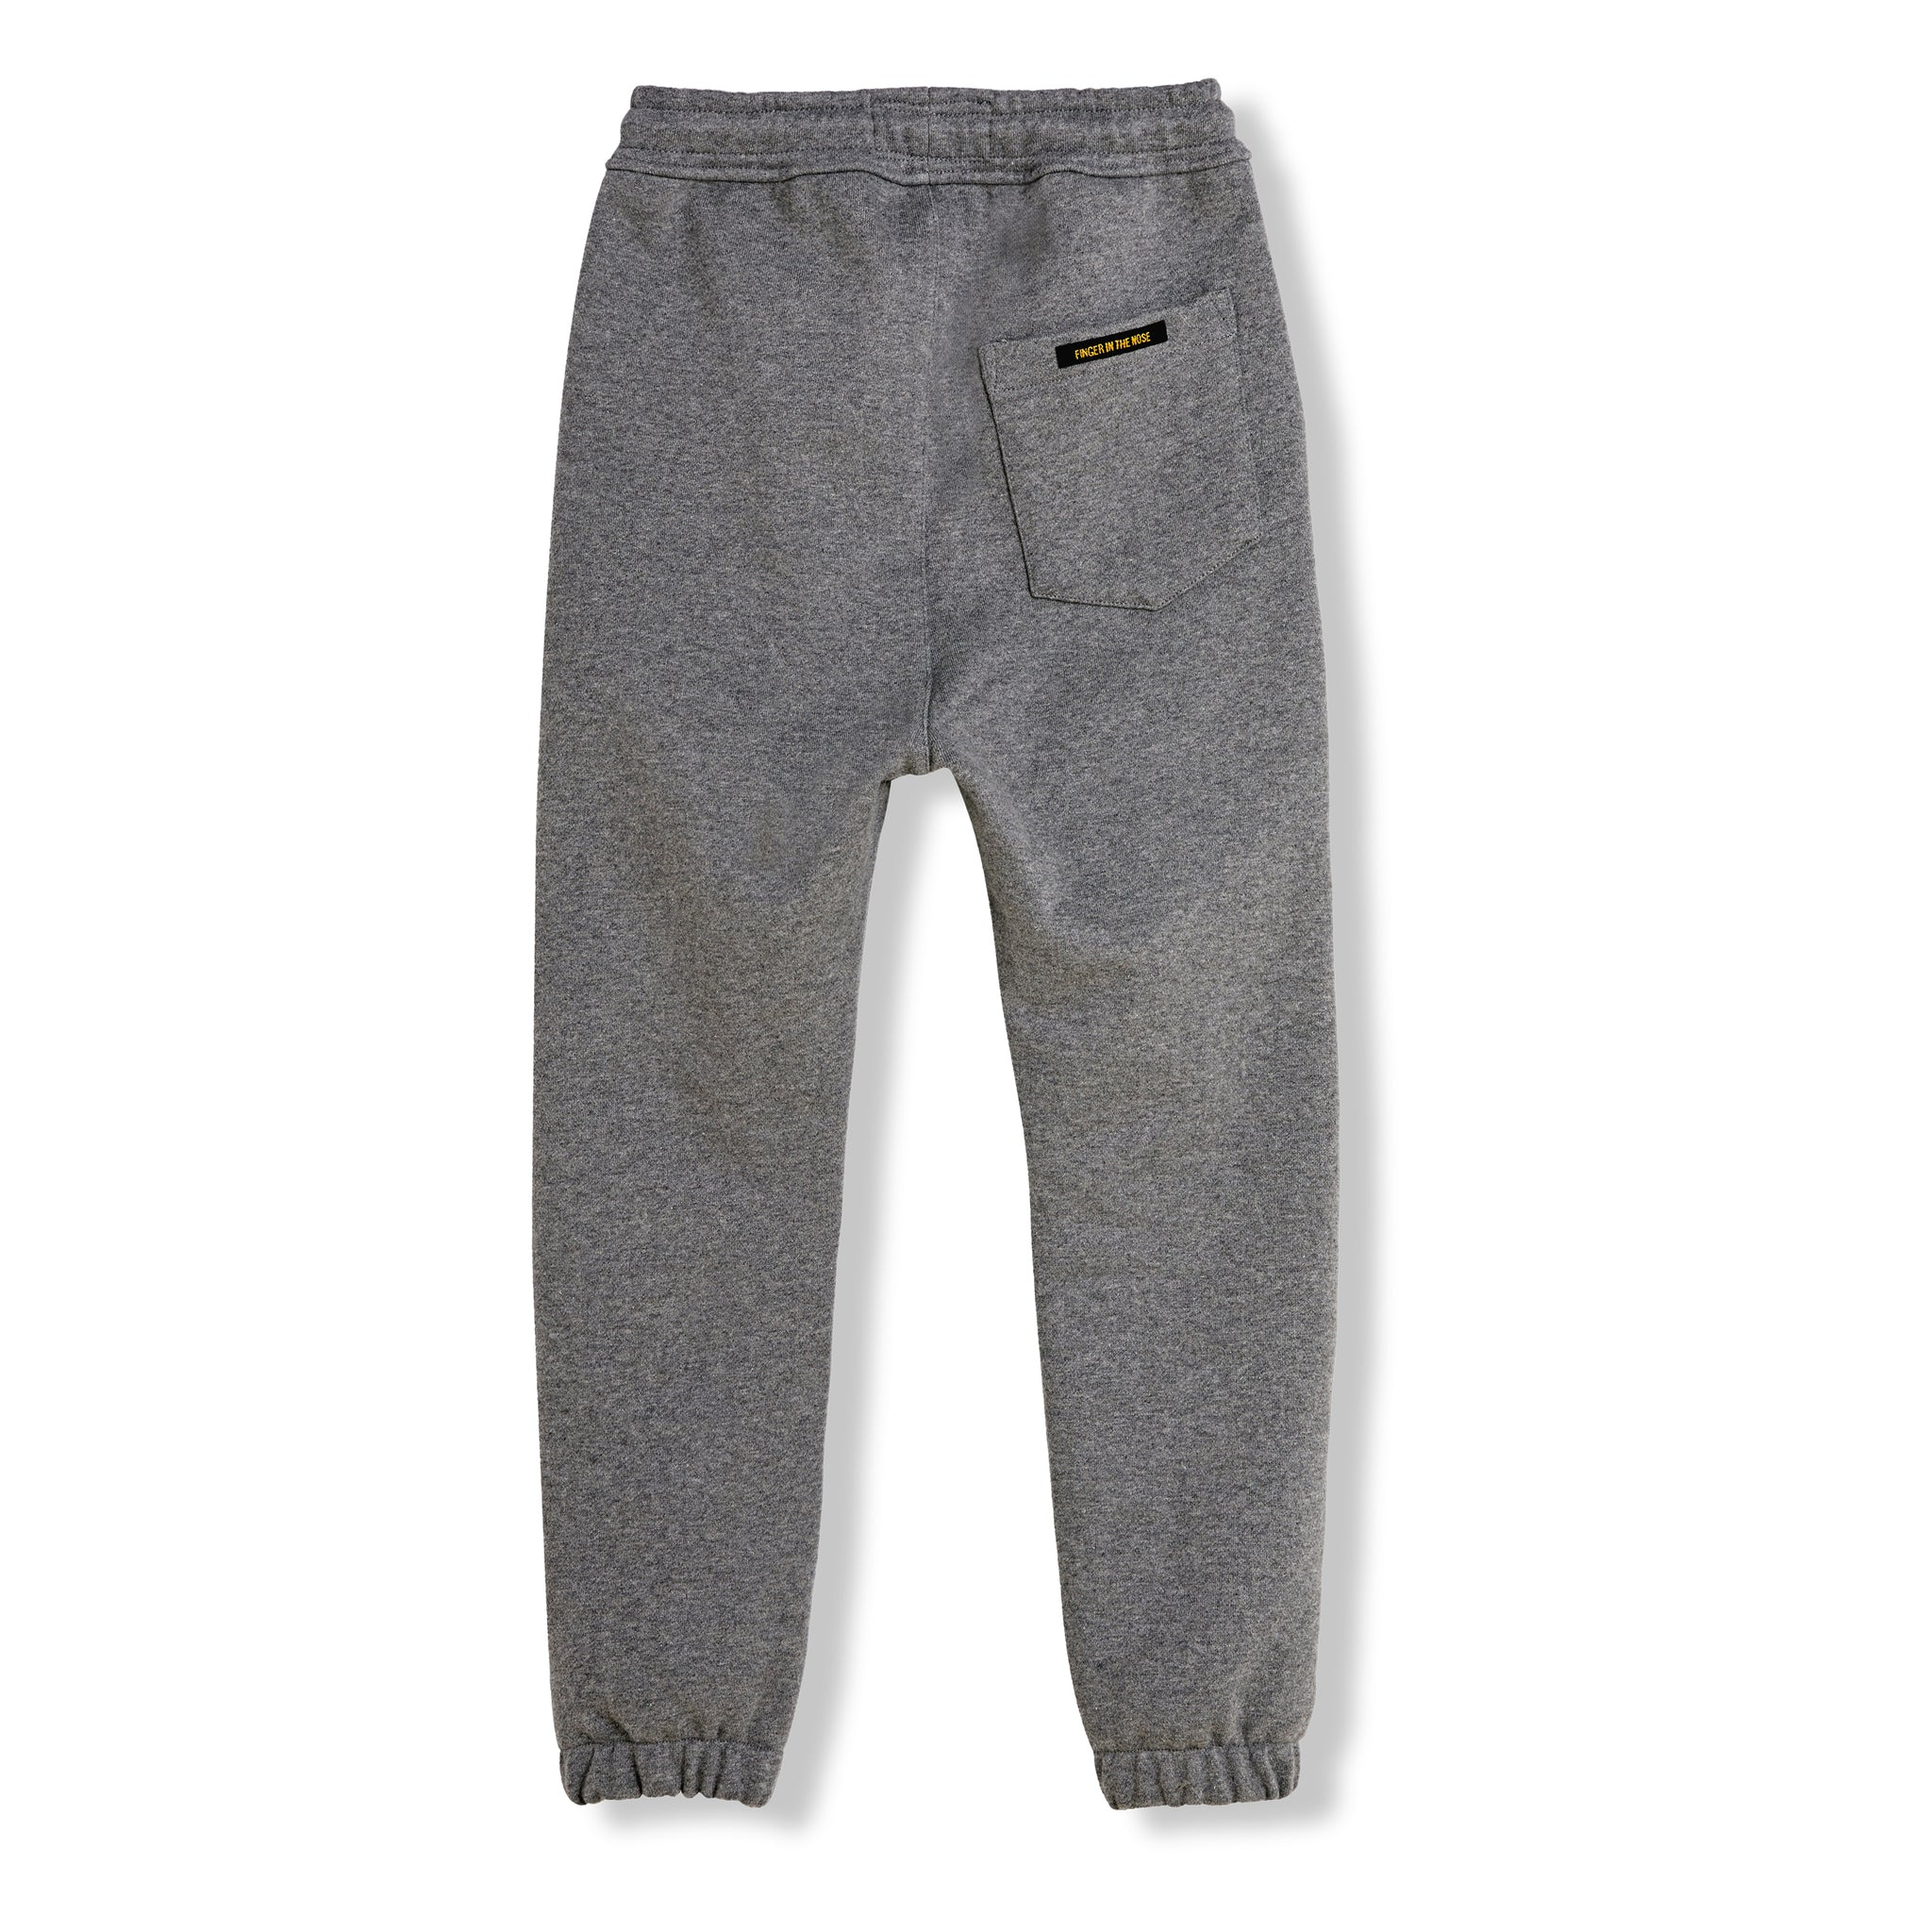 CONOR Dark Heather Grey - Jogging Pant 2